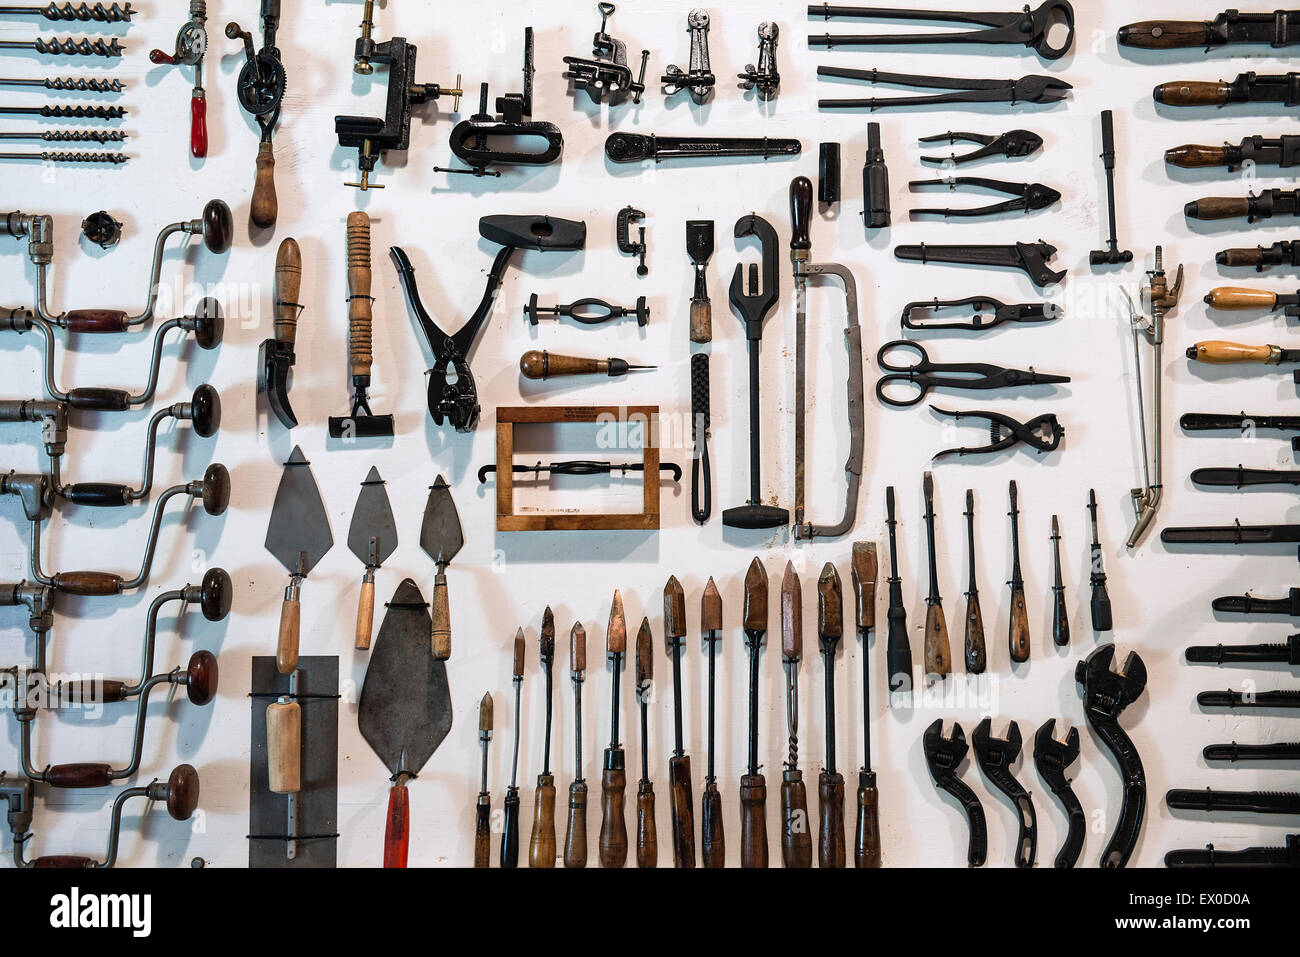 Collection of antique tools. - Stock Image